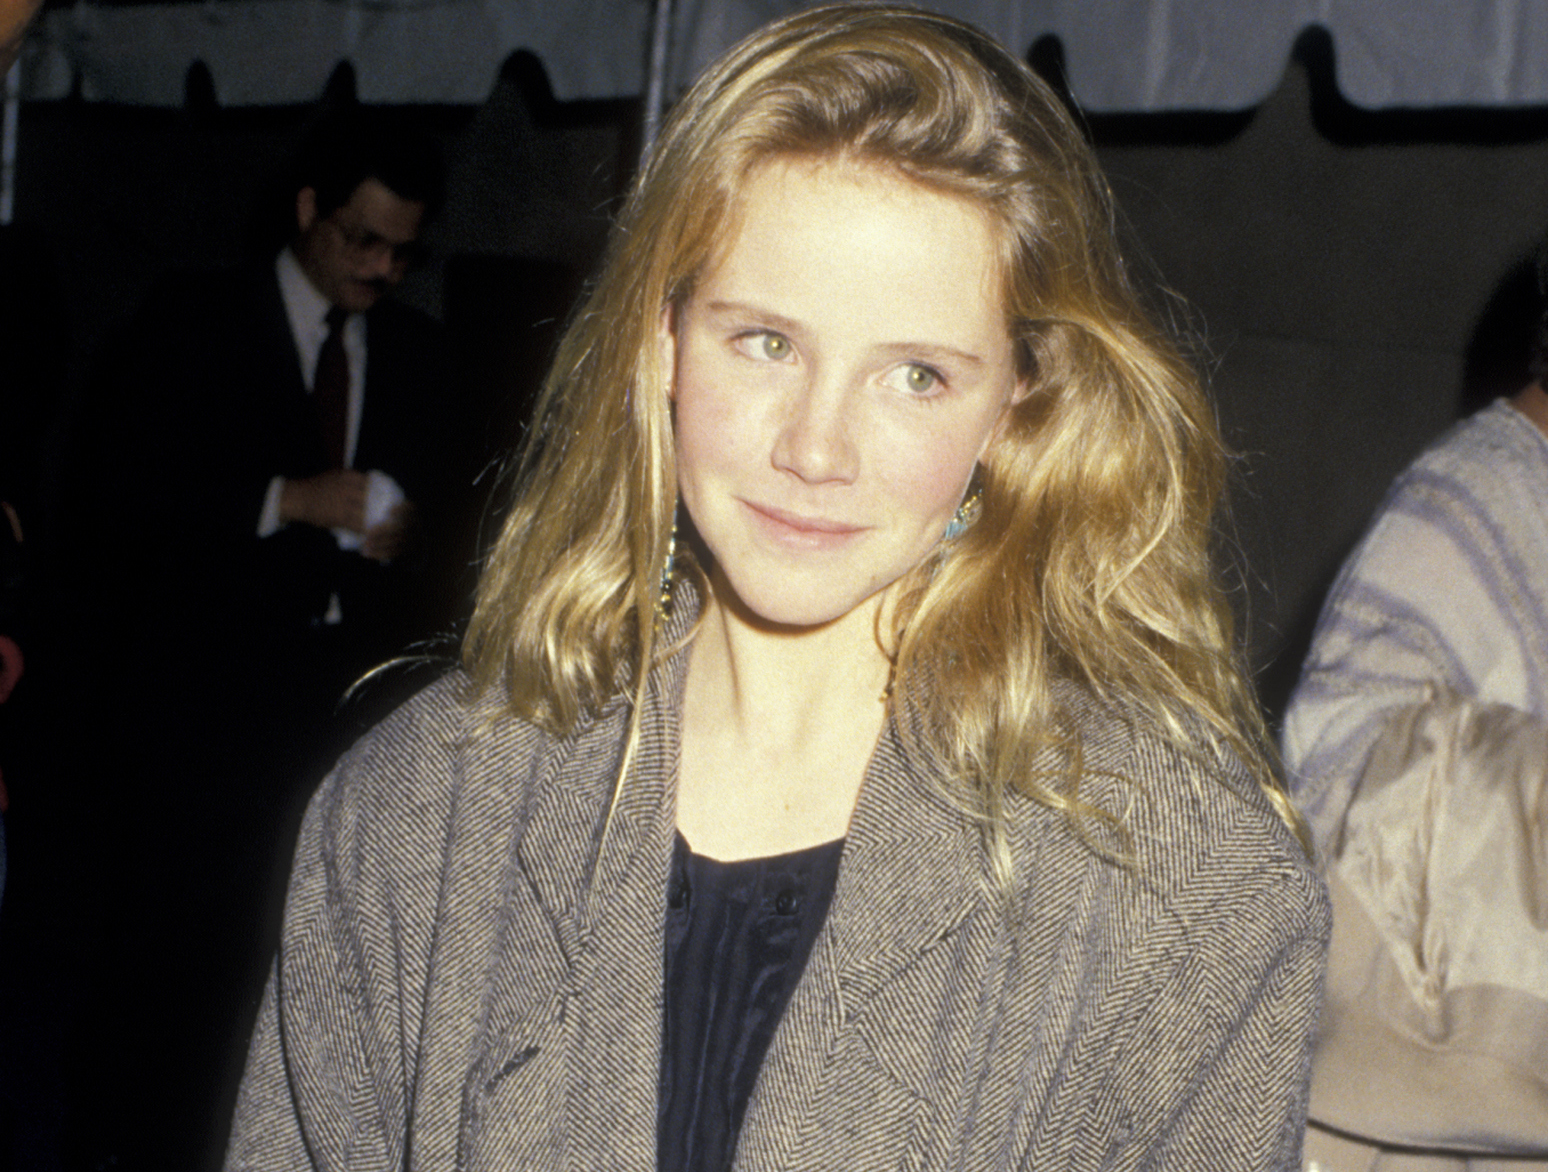 Amanda Peterson Photos autopsy: 'can't buy me love' star amanda peterson died from